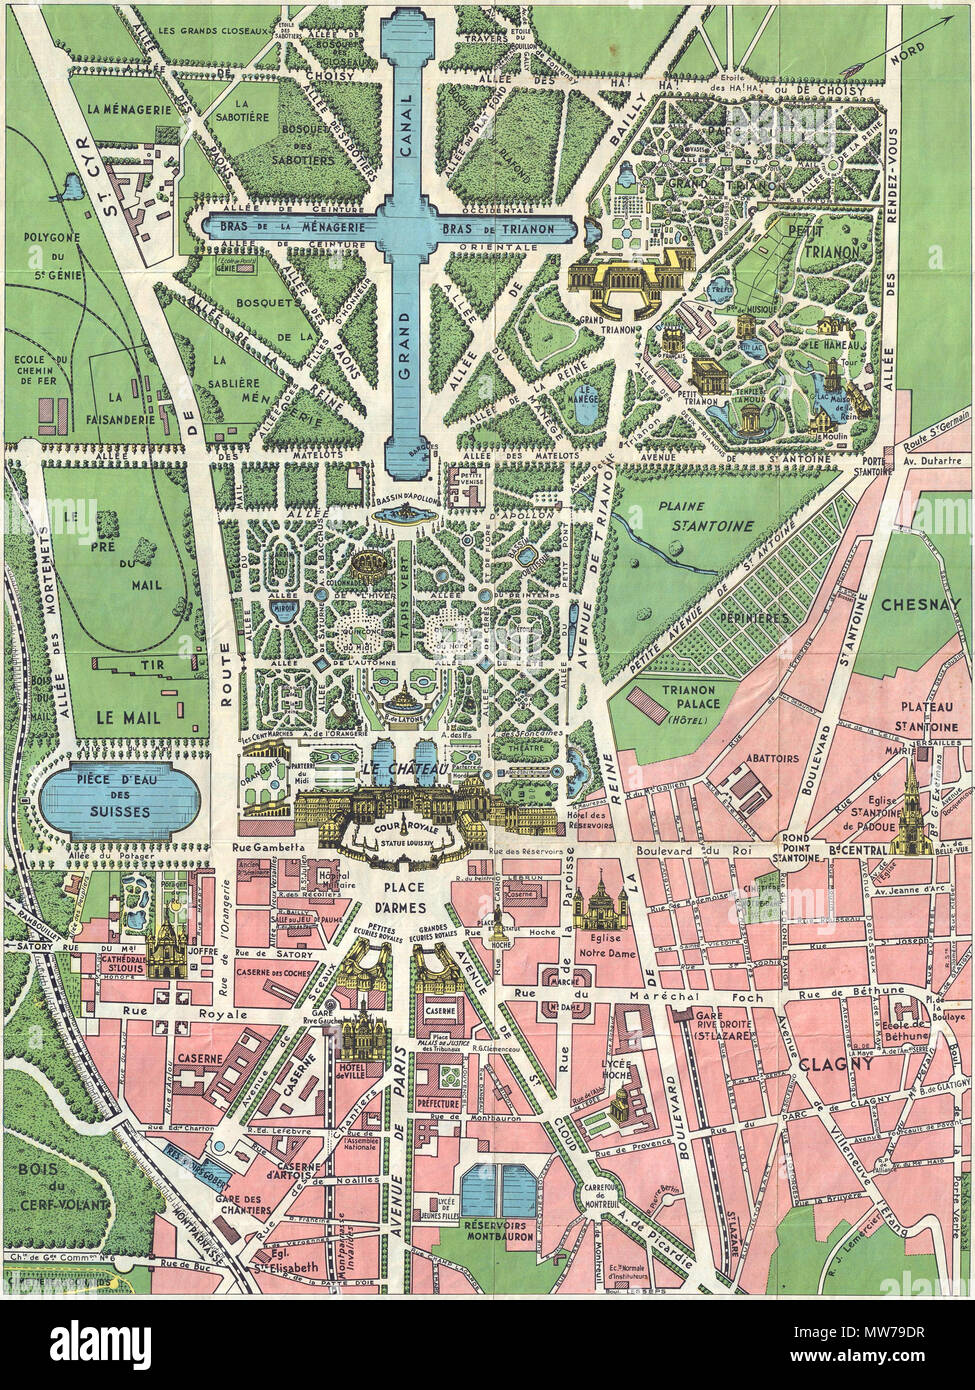 . Paris et ses Monuments. Versailles et ses Promenades.  English: This is an extremely attractive c. 1925 tourist pocket map of Paris, France. Covers the old walled city of Paris and the immediate vicinity. Drawn in a lavish art deco style with important buildings are shown in profile, including the Eiffel Tower, the Arc de Triomphe, Sacre-Coeur, the Pantheon, and others. Shows both the train and Metro lines throughout the city. This map was issued in various editions from, roughly 1900 to 1937. Most examples, like this one, are undated but we can estimate a approximate date based upon the dev - Stock Image